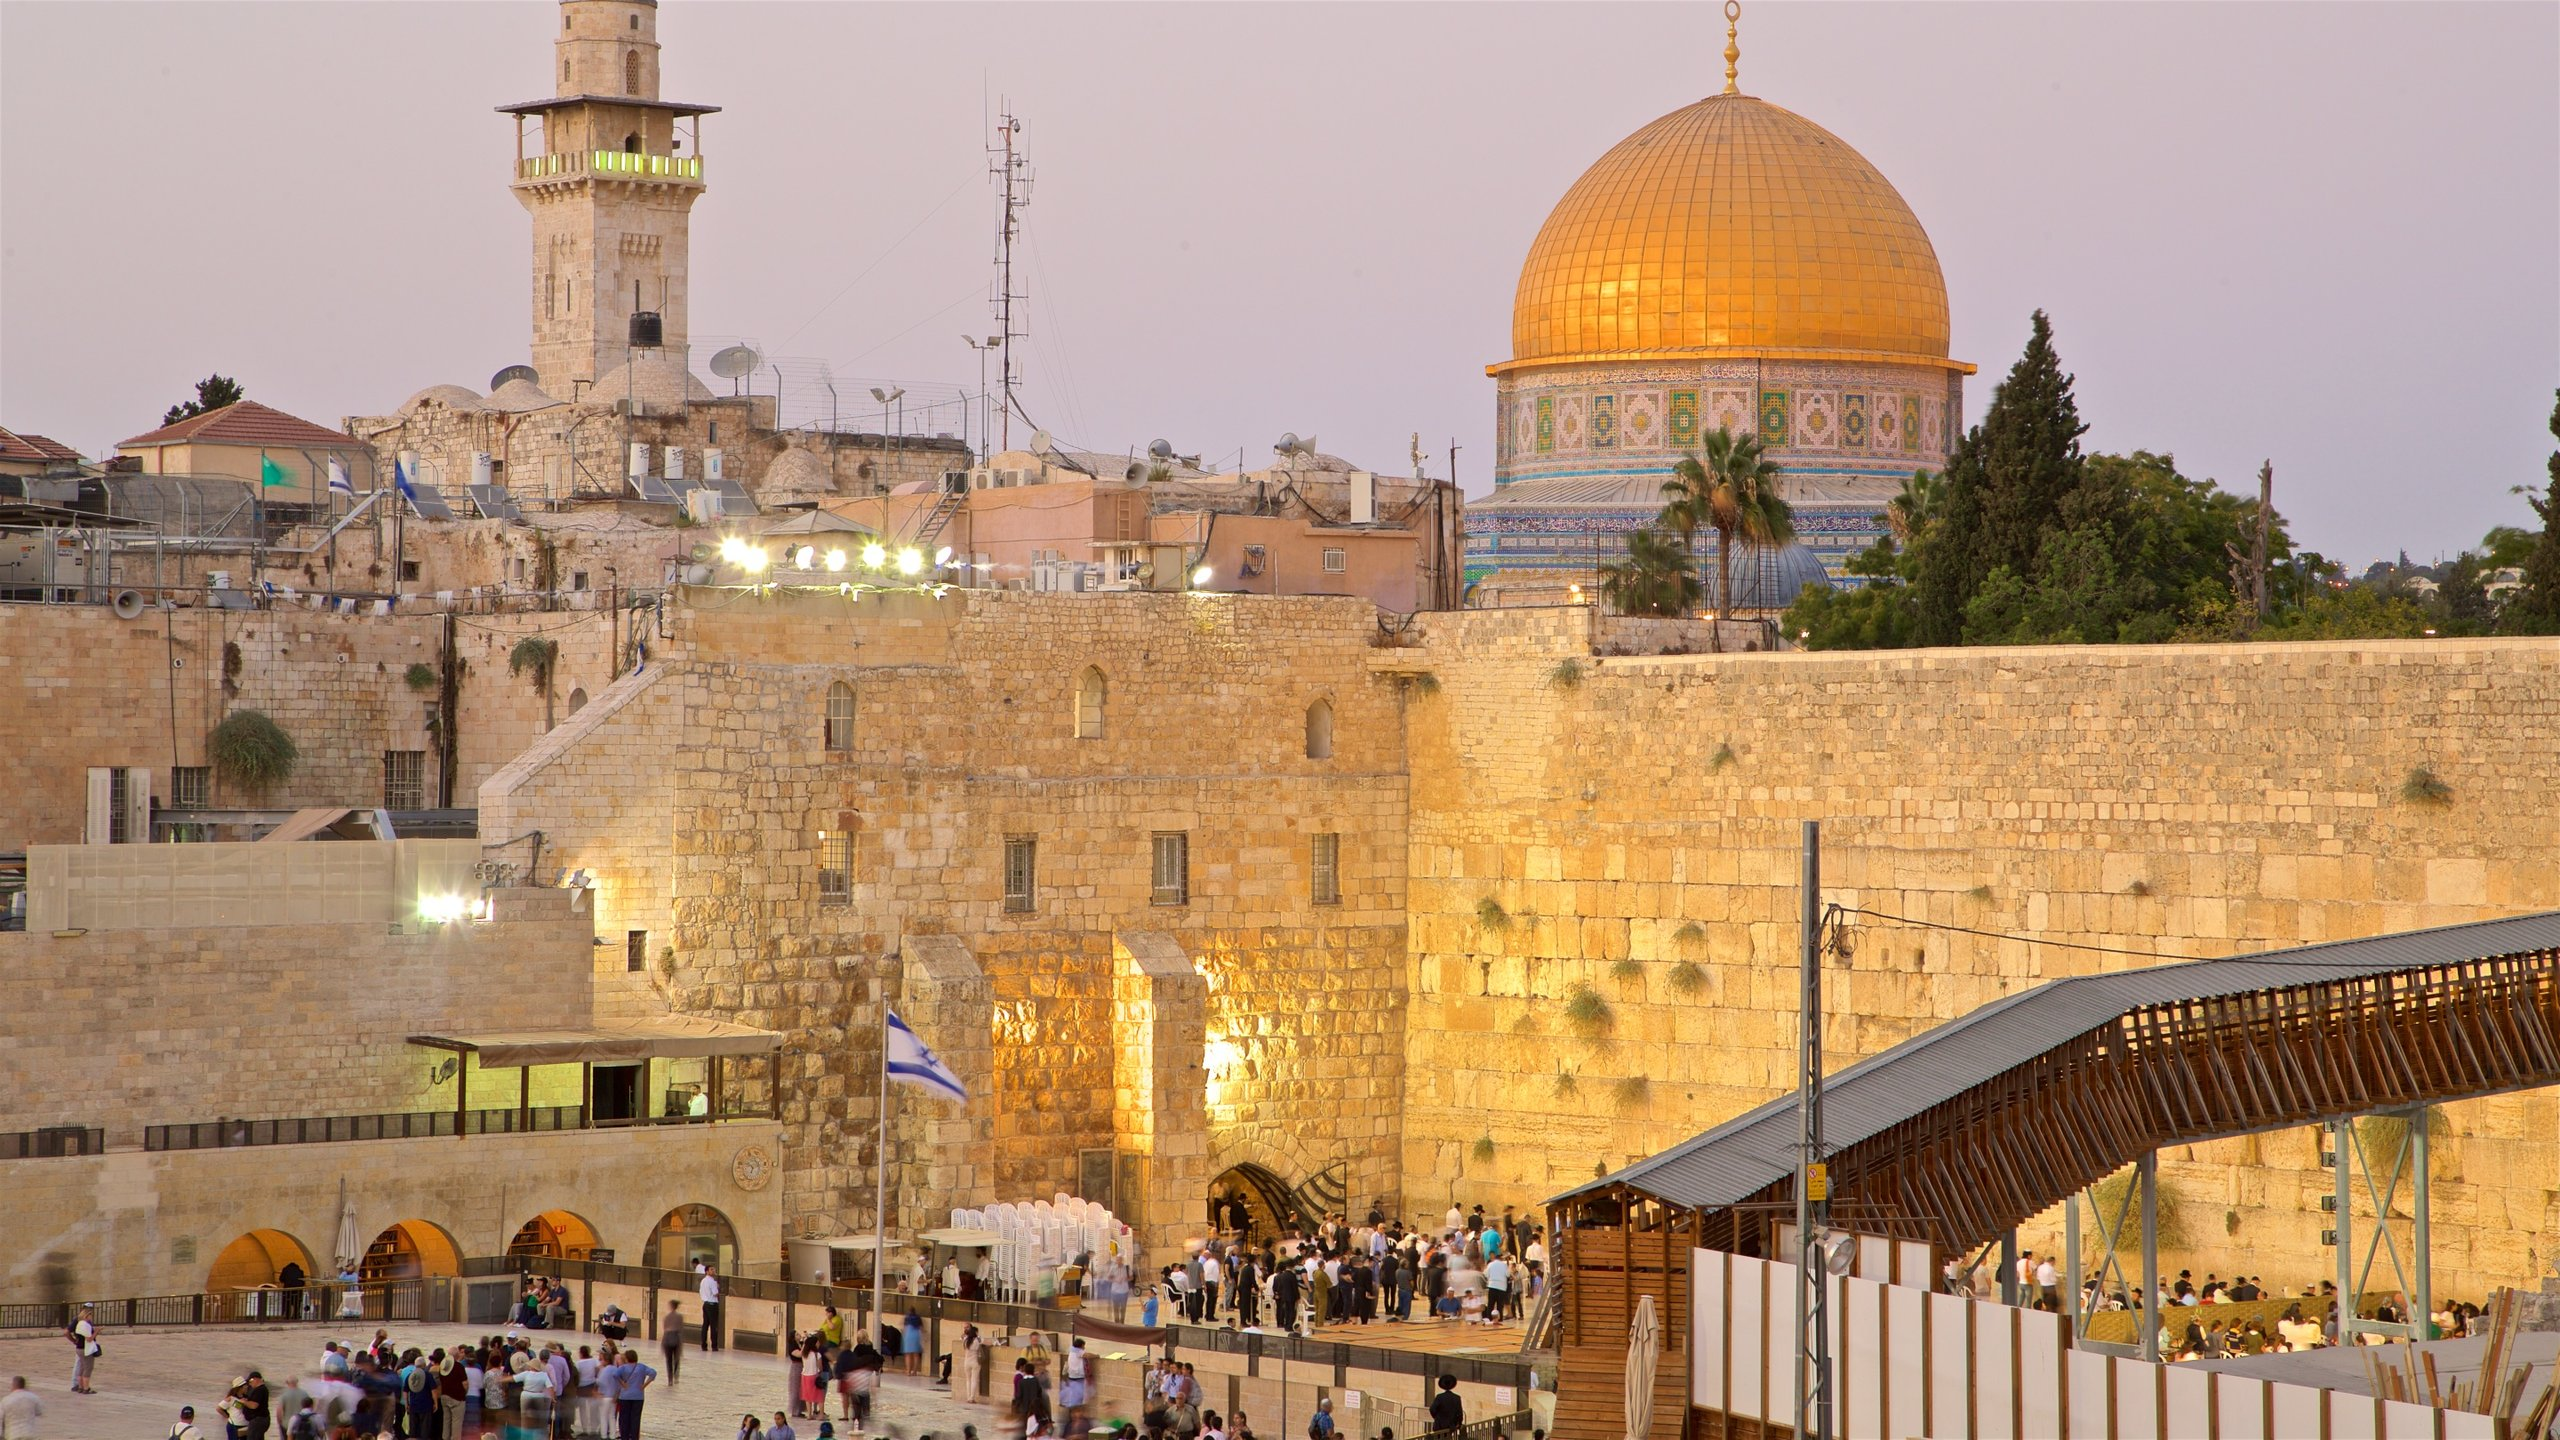 This 2,000-year-old structure is one of the world's holiest sites, where hundreds of praying worshippers make for a stirring sight.